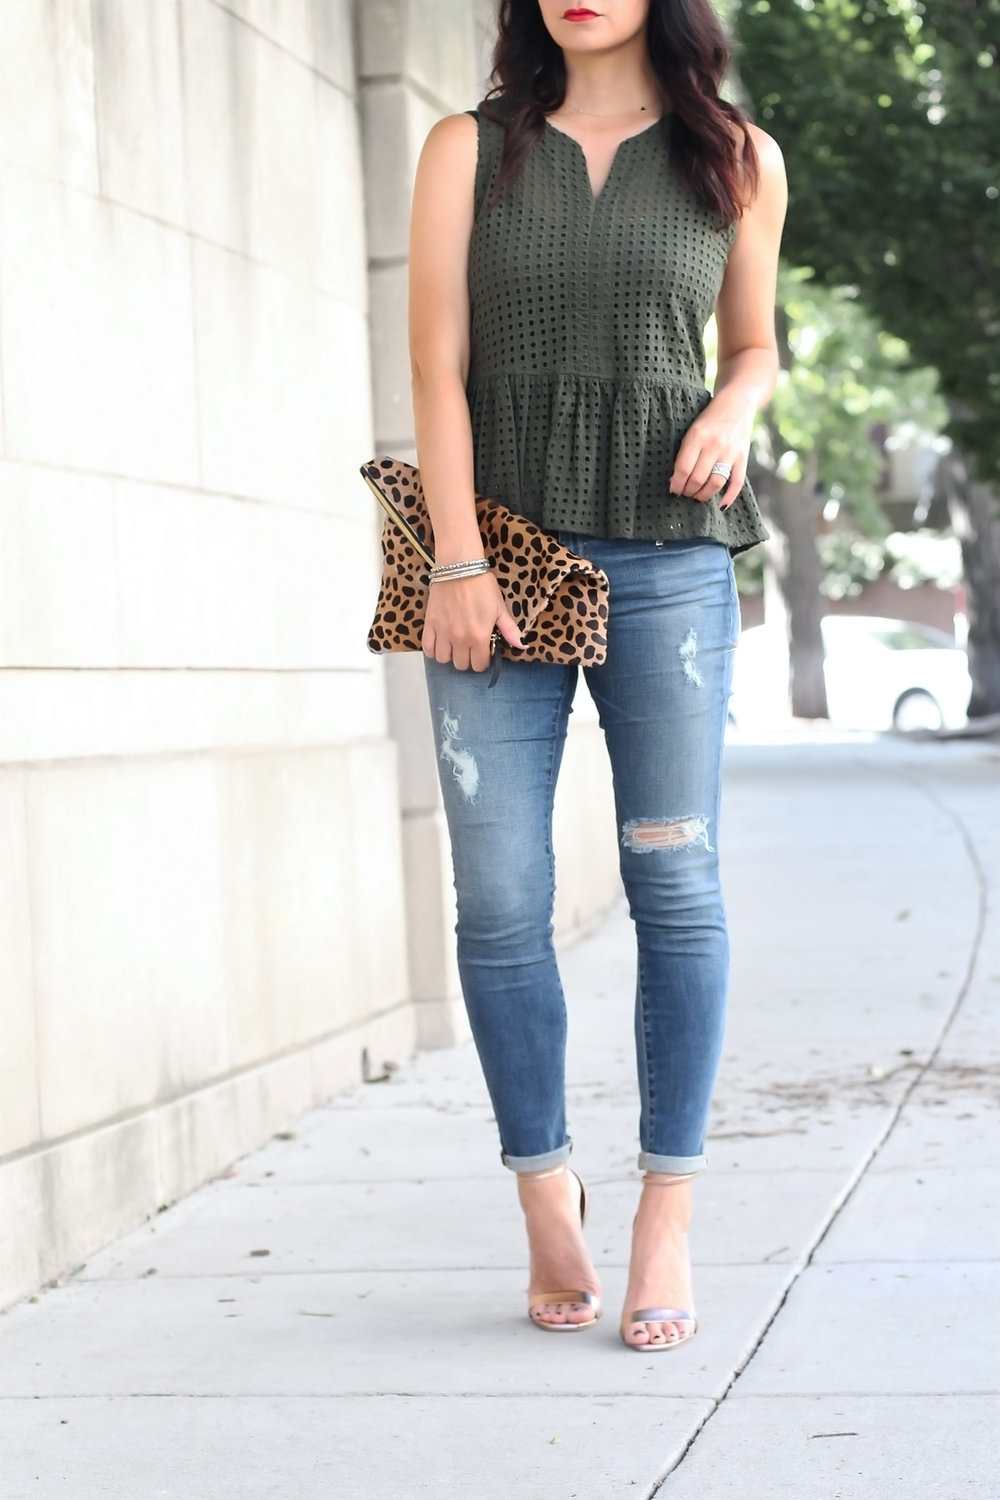 Tips for Wearing Olive Green